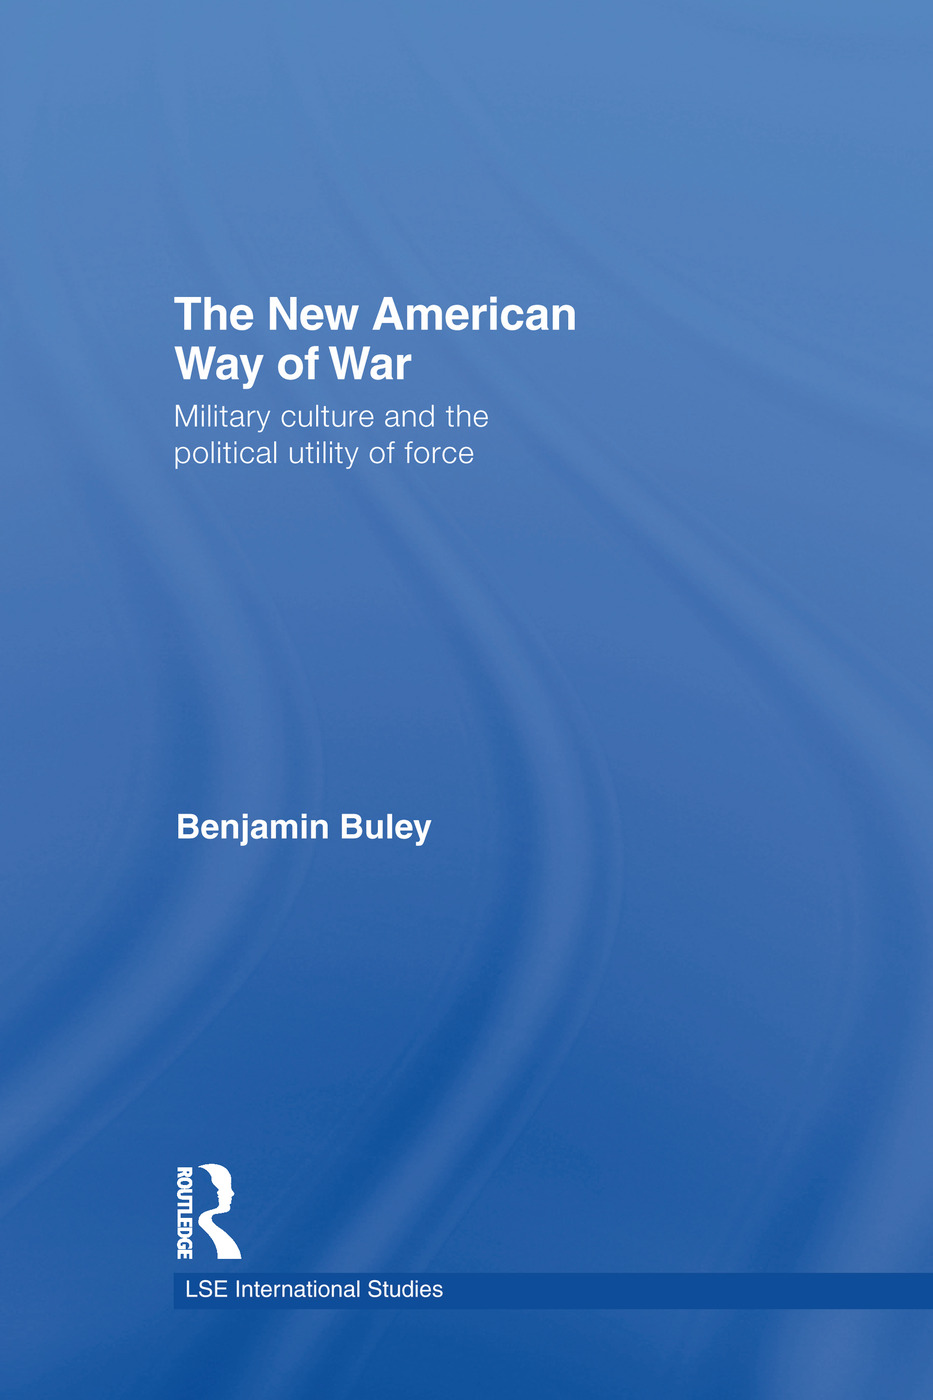 The New American Way of War: Military Culture and the Political Utility of Force book cover